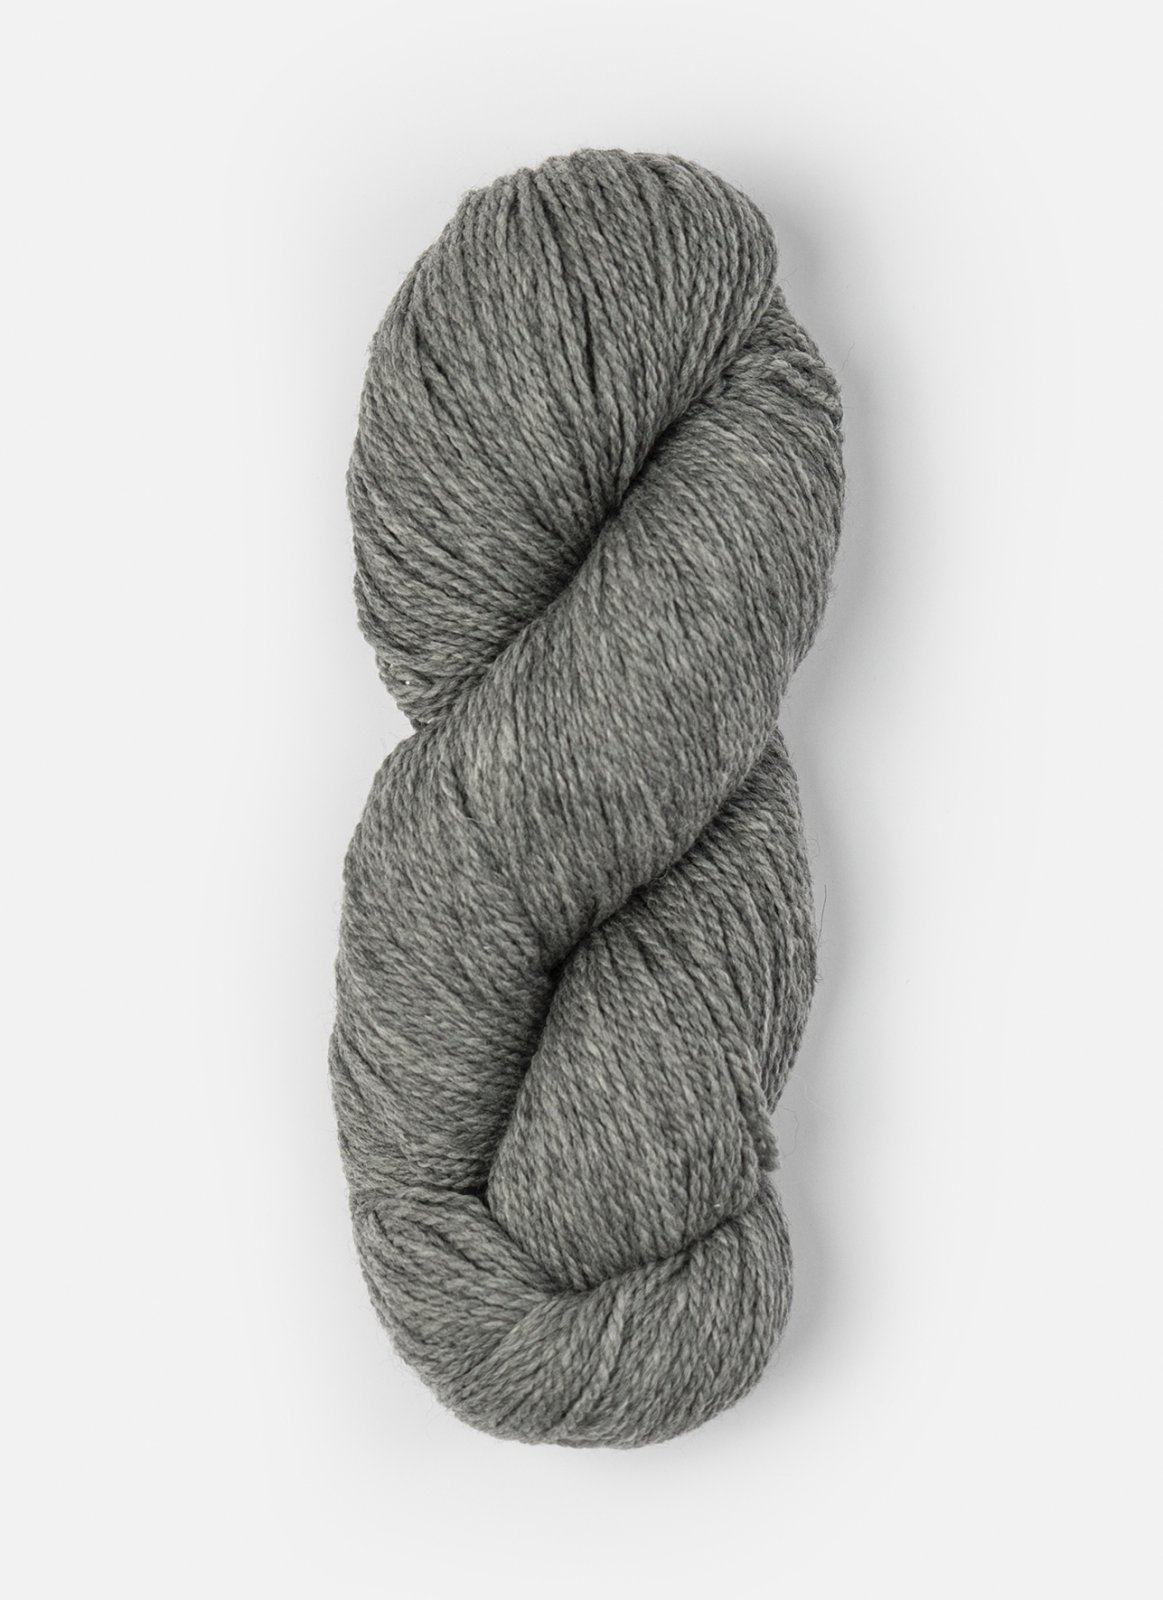 Blue Sky Fibers - Woolstok Worsted - 150g - Assorted Colors